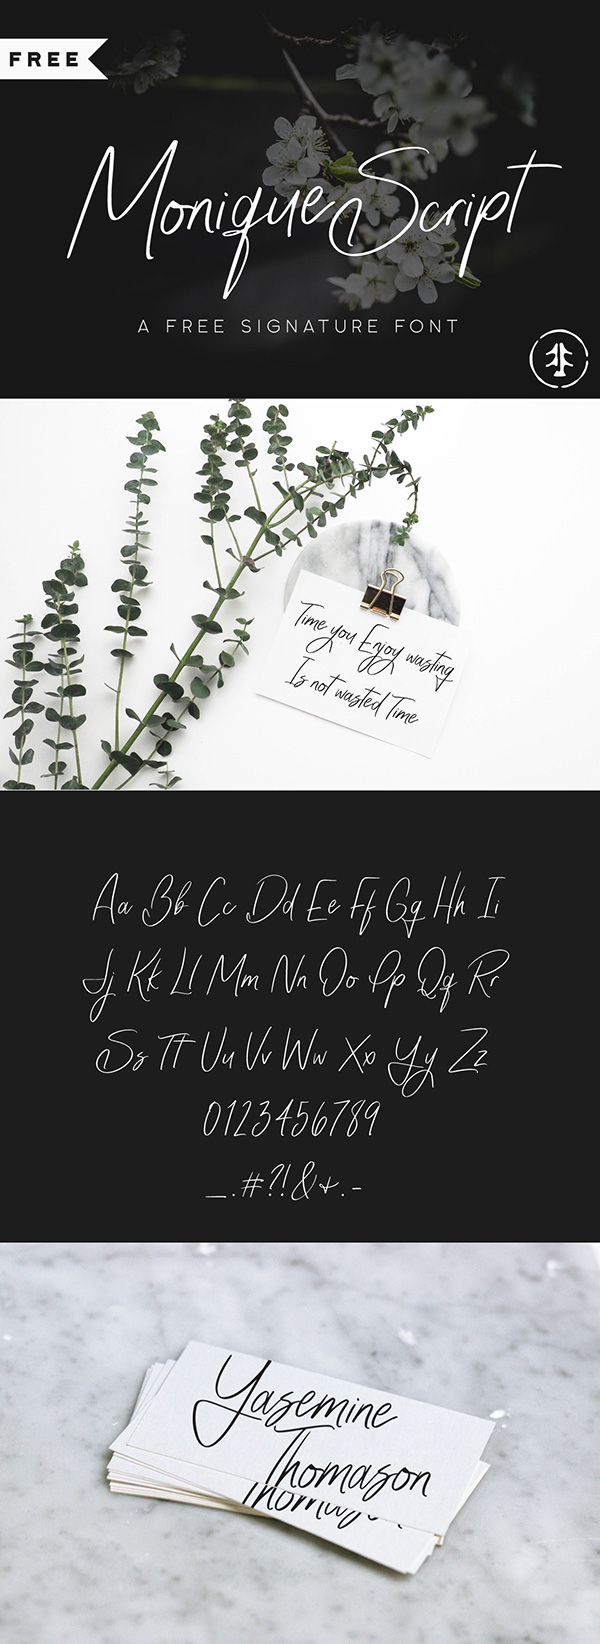 Monique - Free Wedding Font